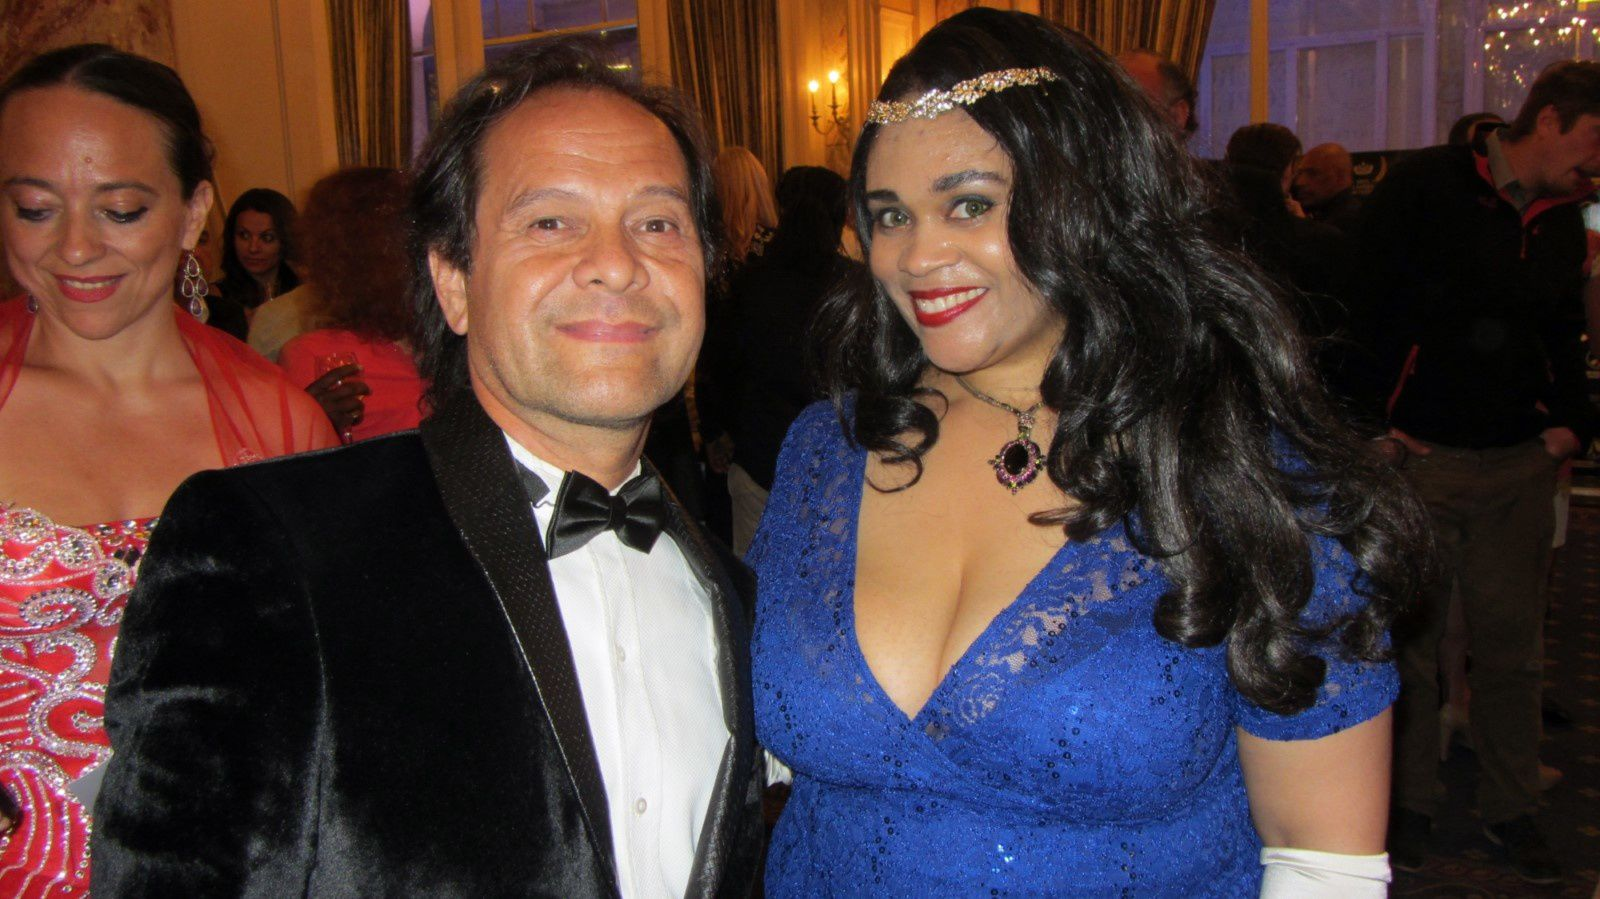 CANNES: CINEMA AND HUMANITARIAN EFFORTS BY PRINCESS ANGELIQUE MONET